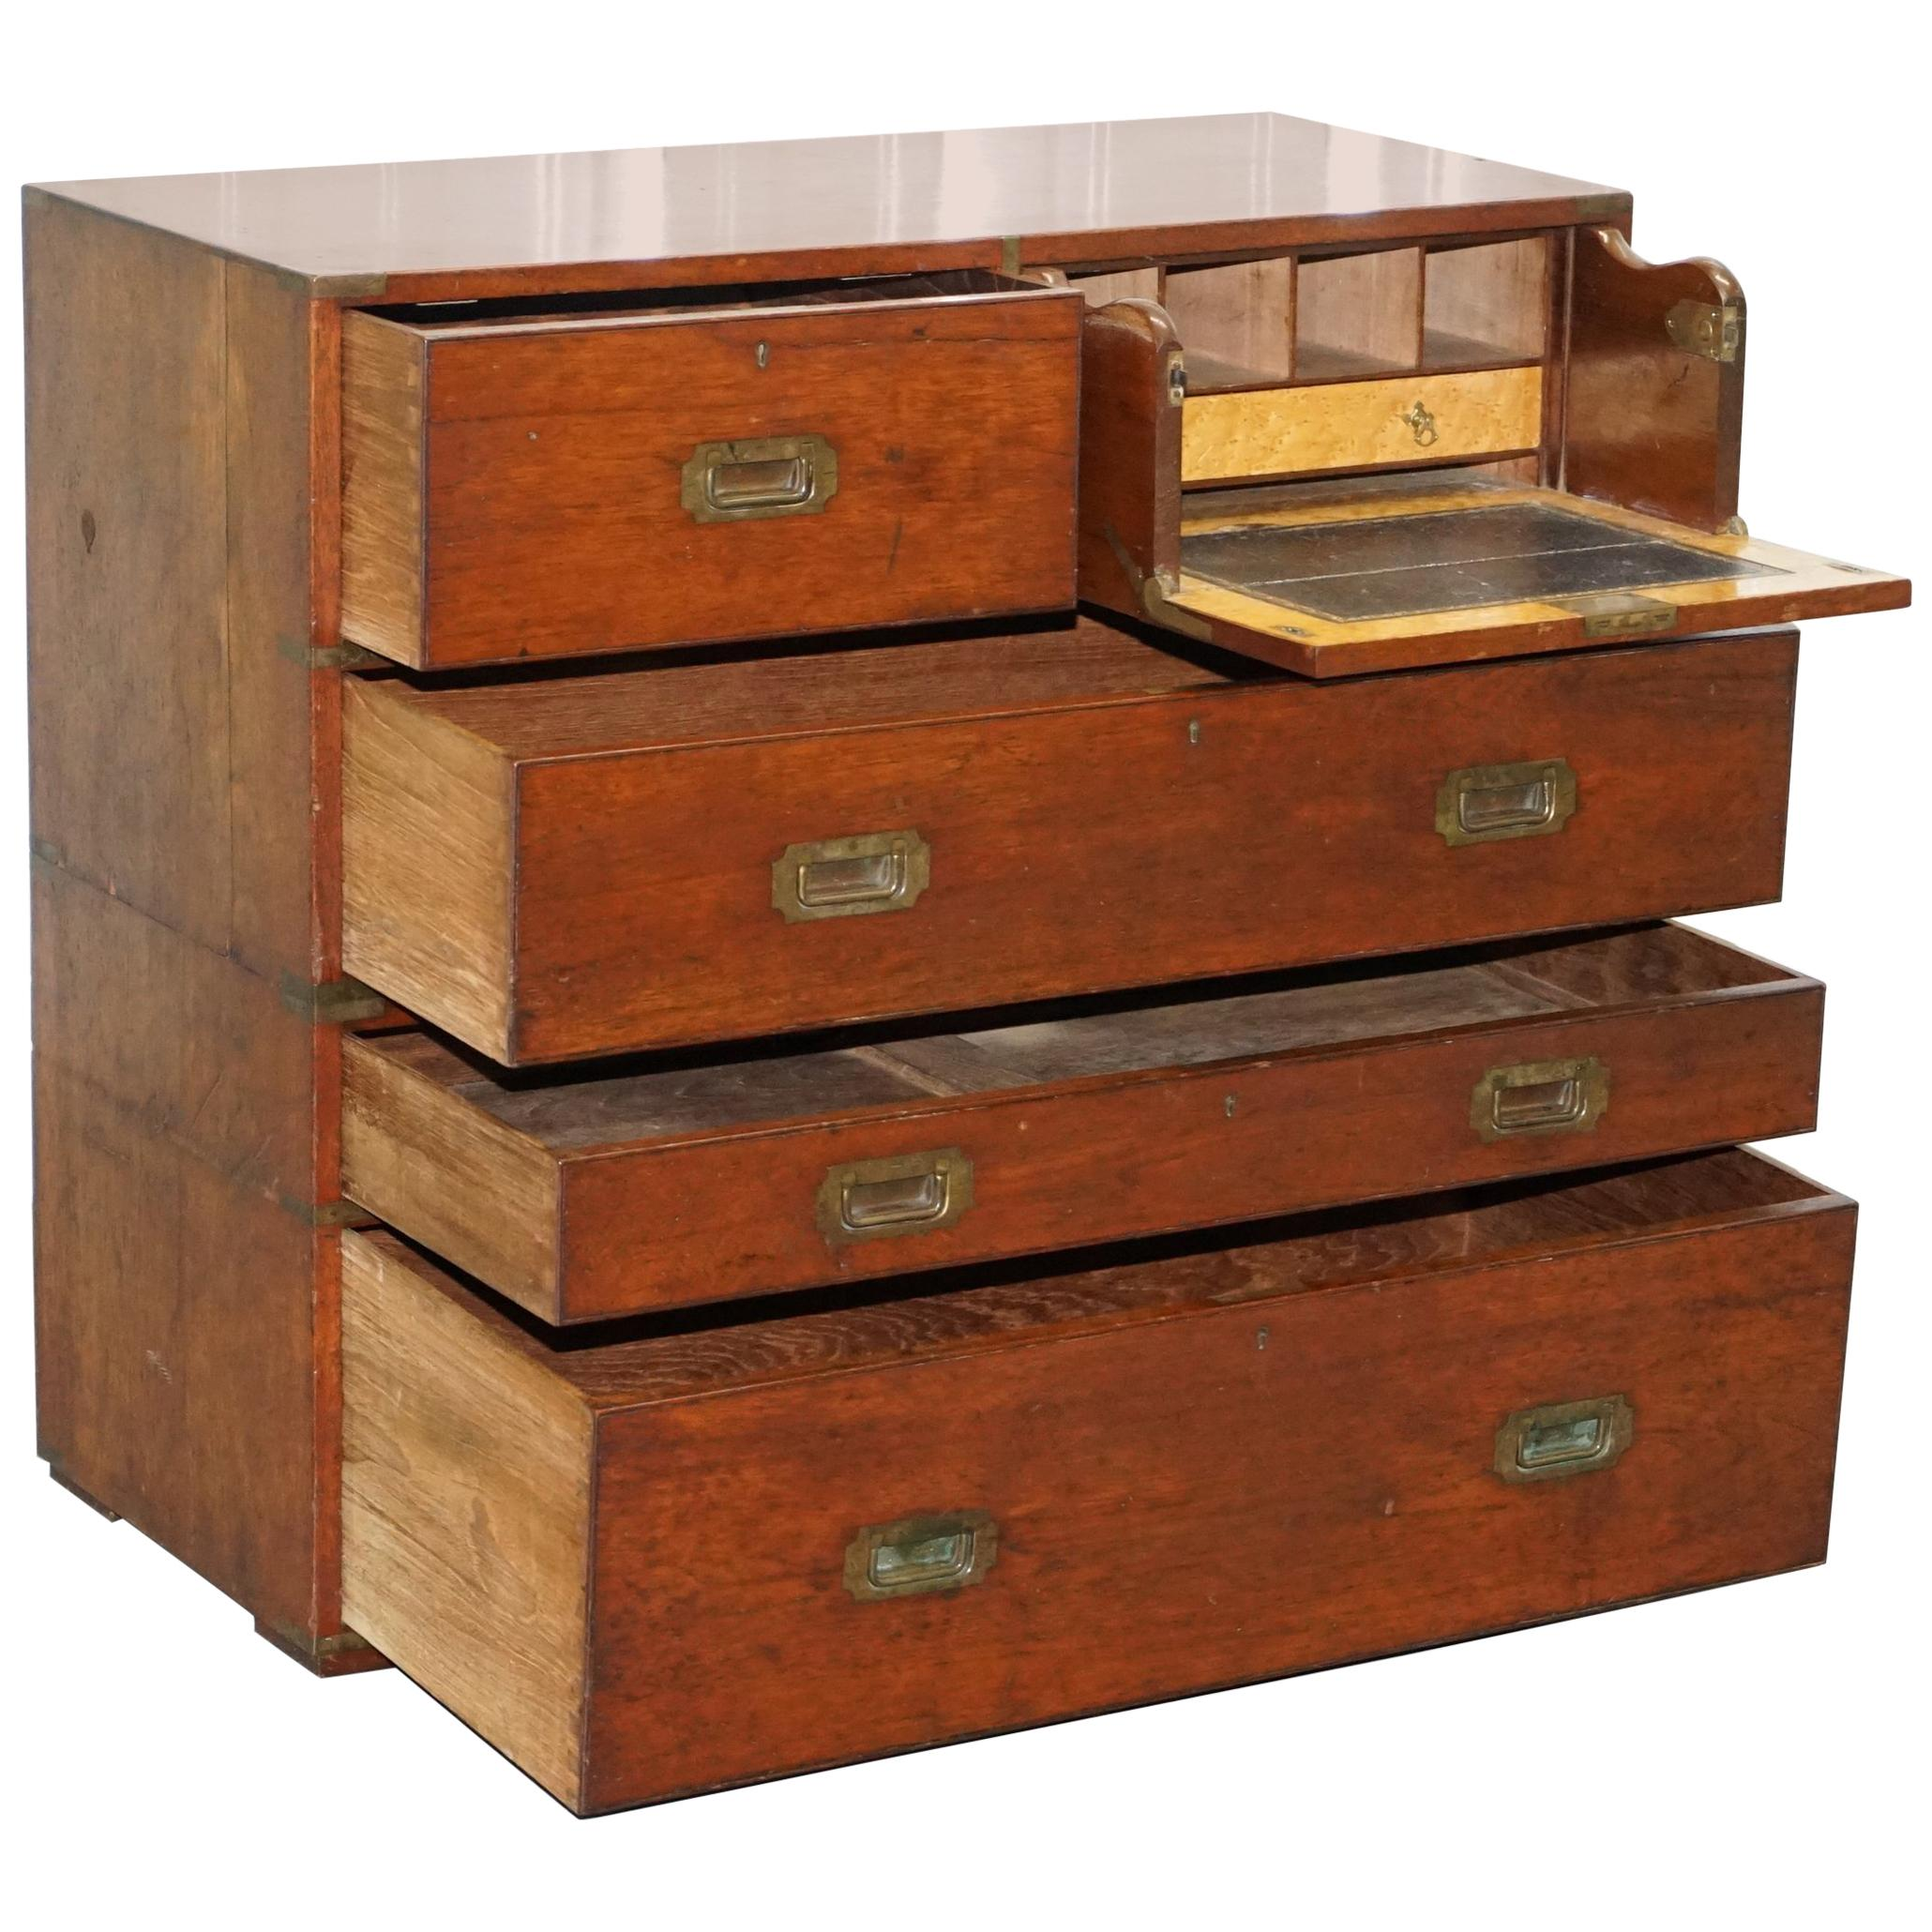 Original 1890 Army & Navy C.S.L Stamped Campaign Chest of Drawers Including Desk